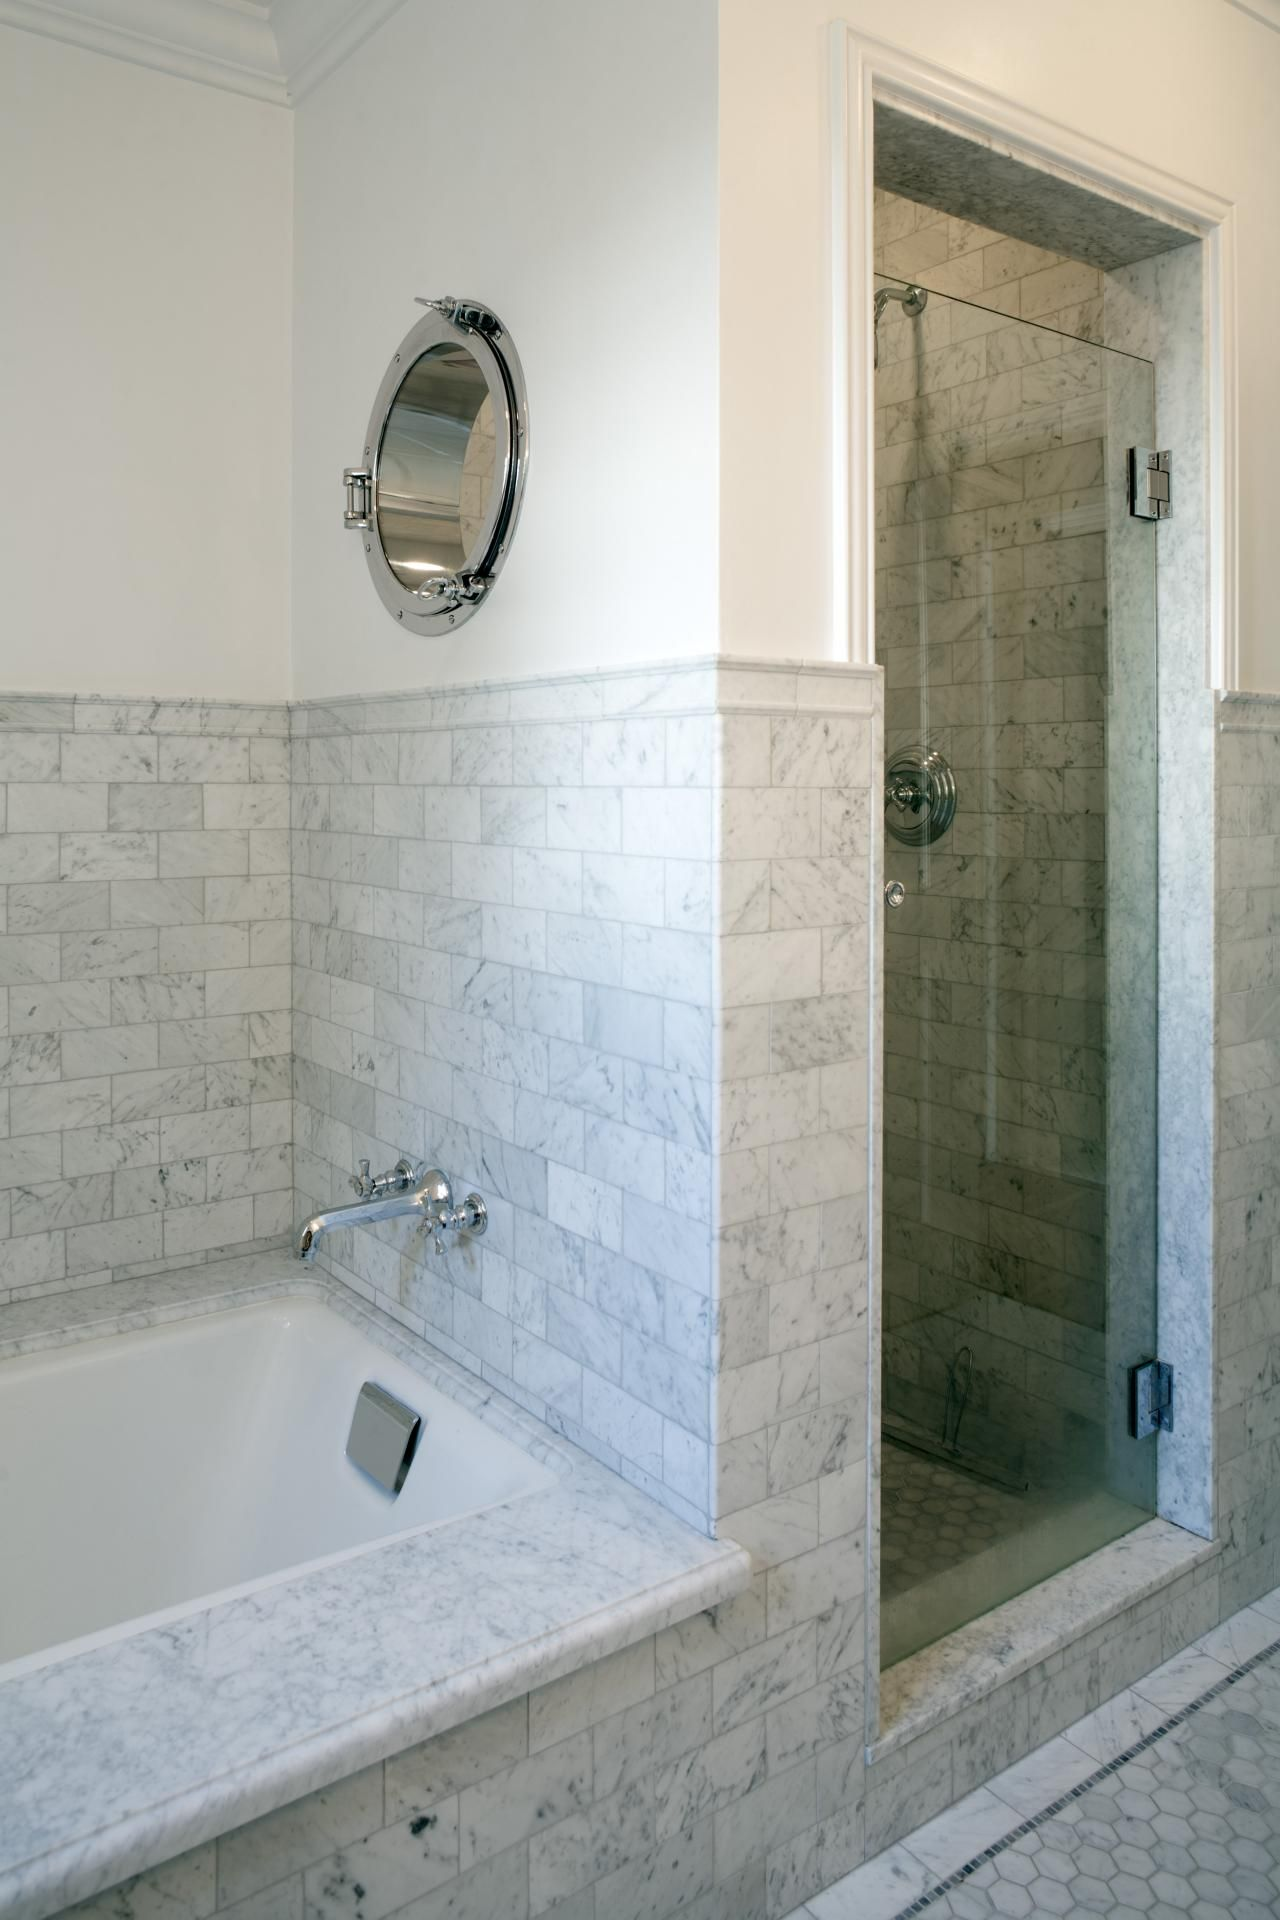 Charmant The Bathroom Was Reworked To Include A Separate Walk In Shower And Tub. A